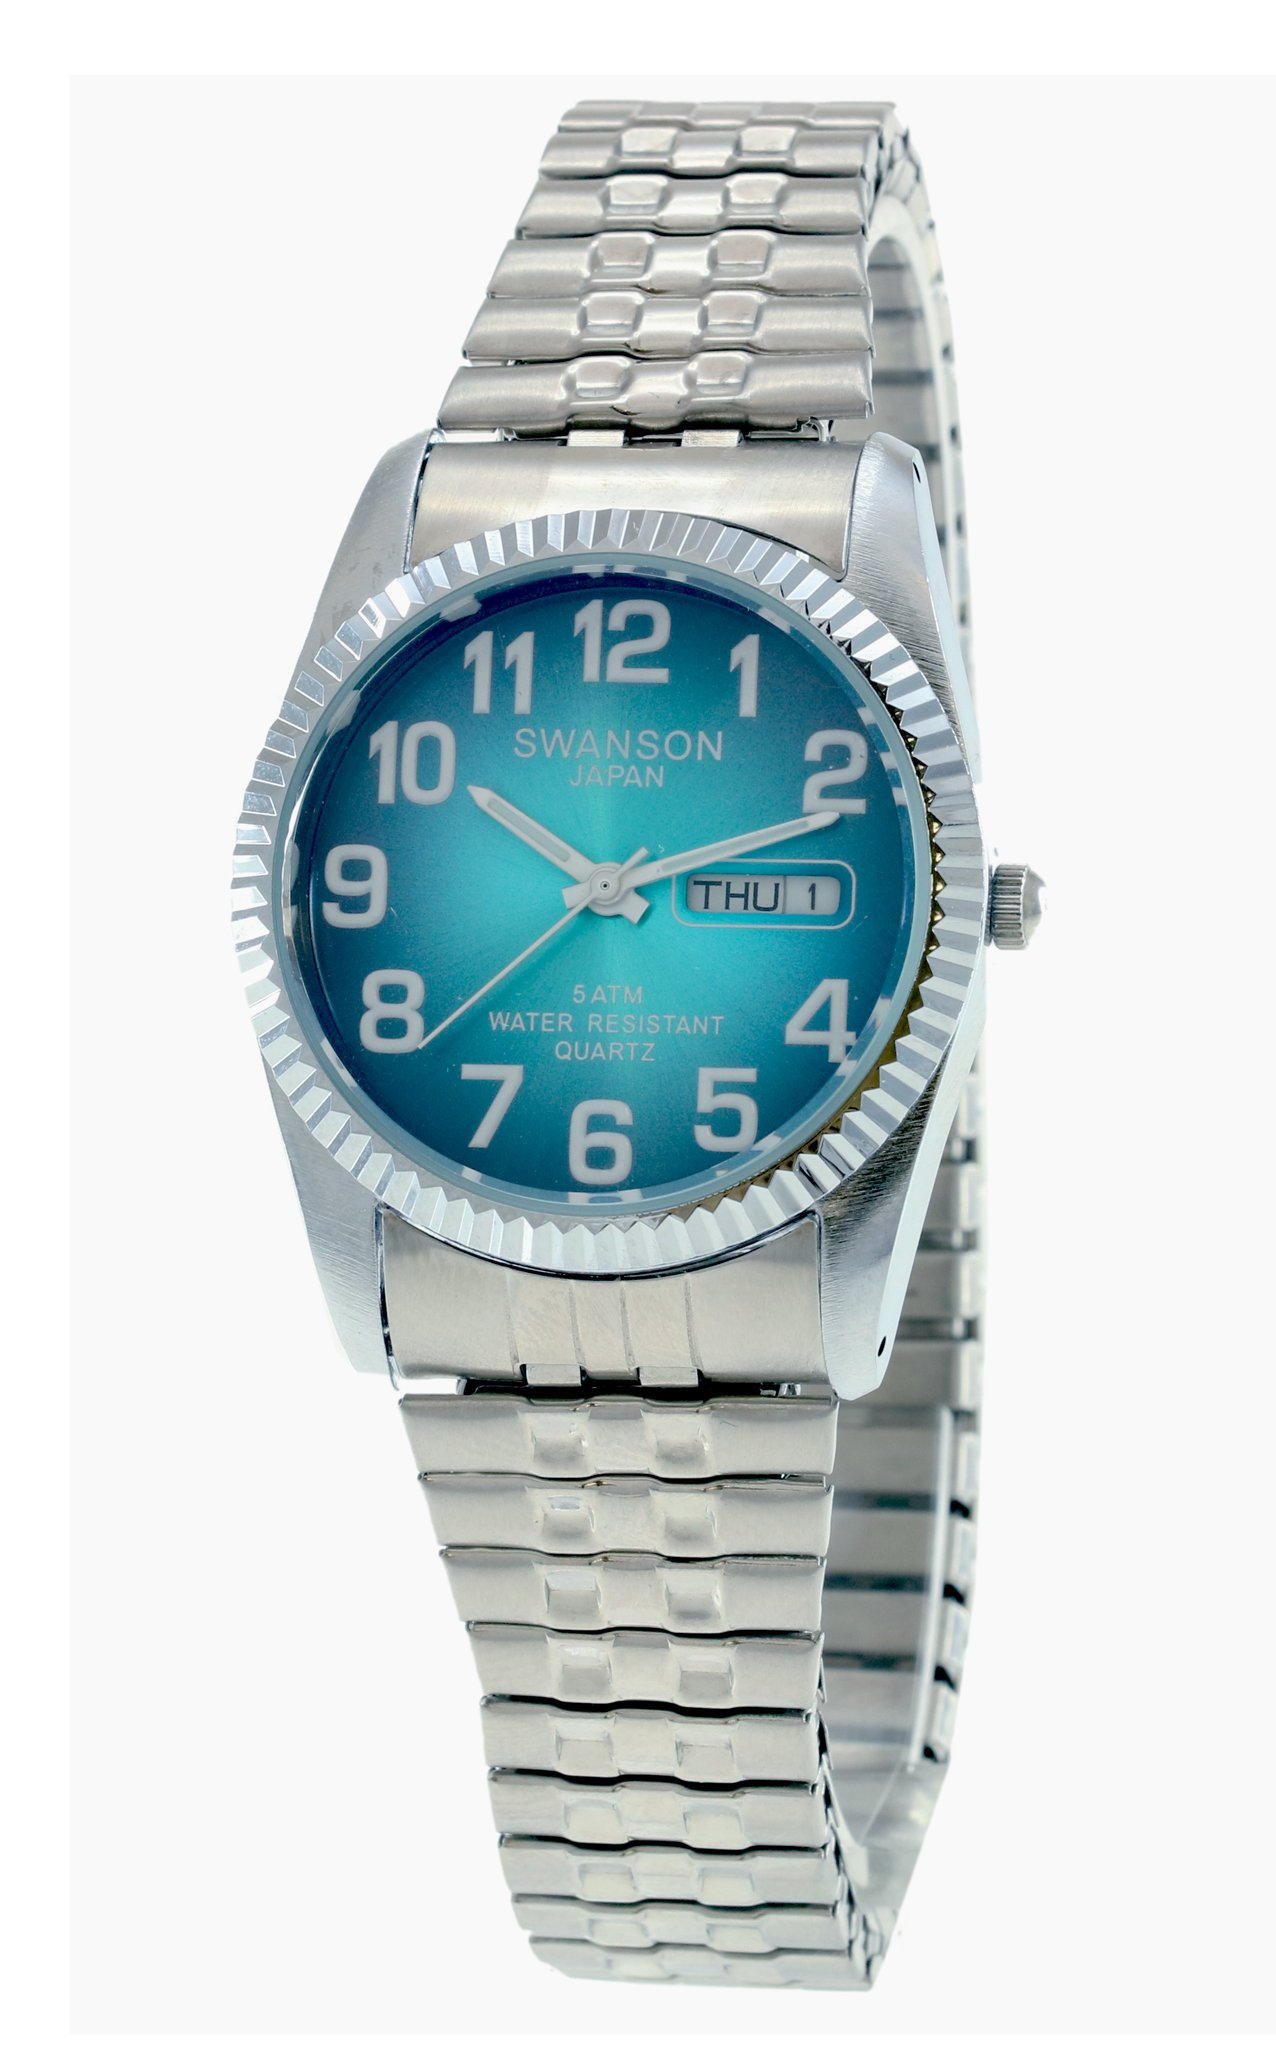 Swanson Japan Men's Silver Expansion Band Smooth Turquoise Vignette Numbers Dial Watch with Travel Case